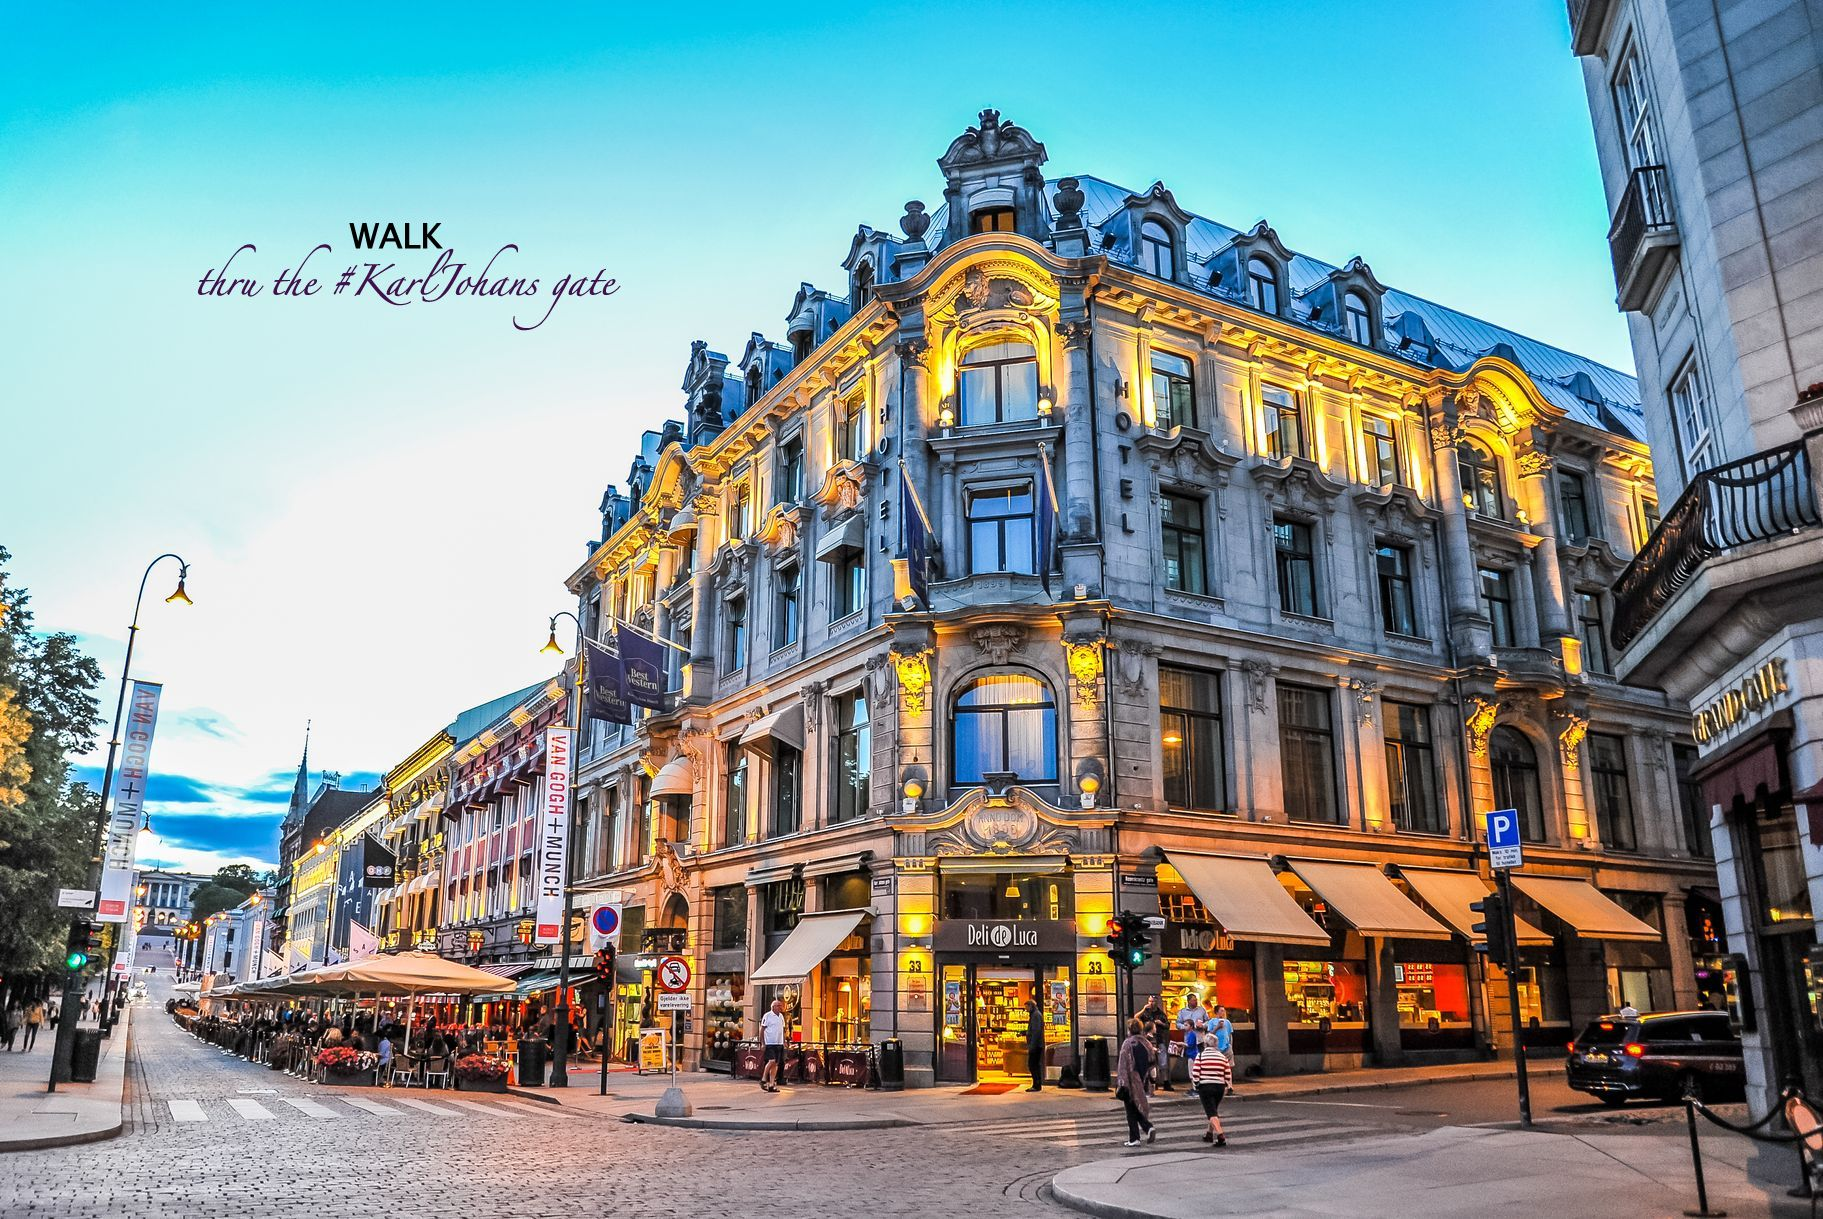 WALK thru the #KarlJohans gate